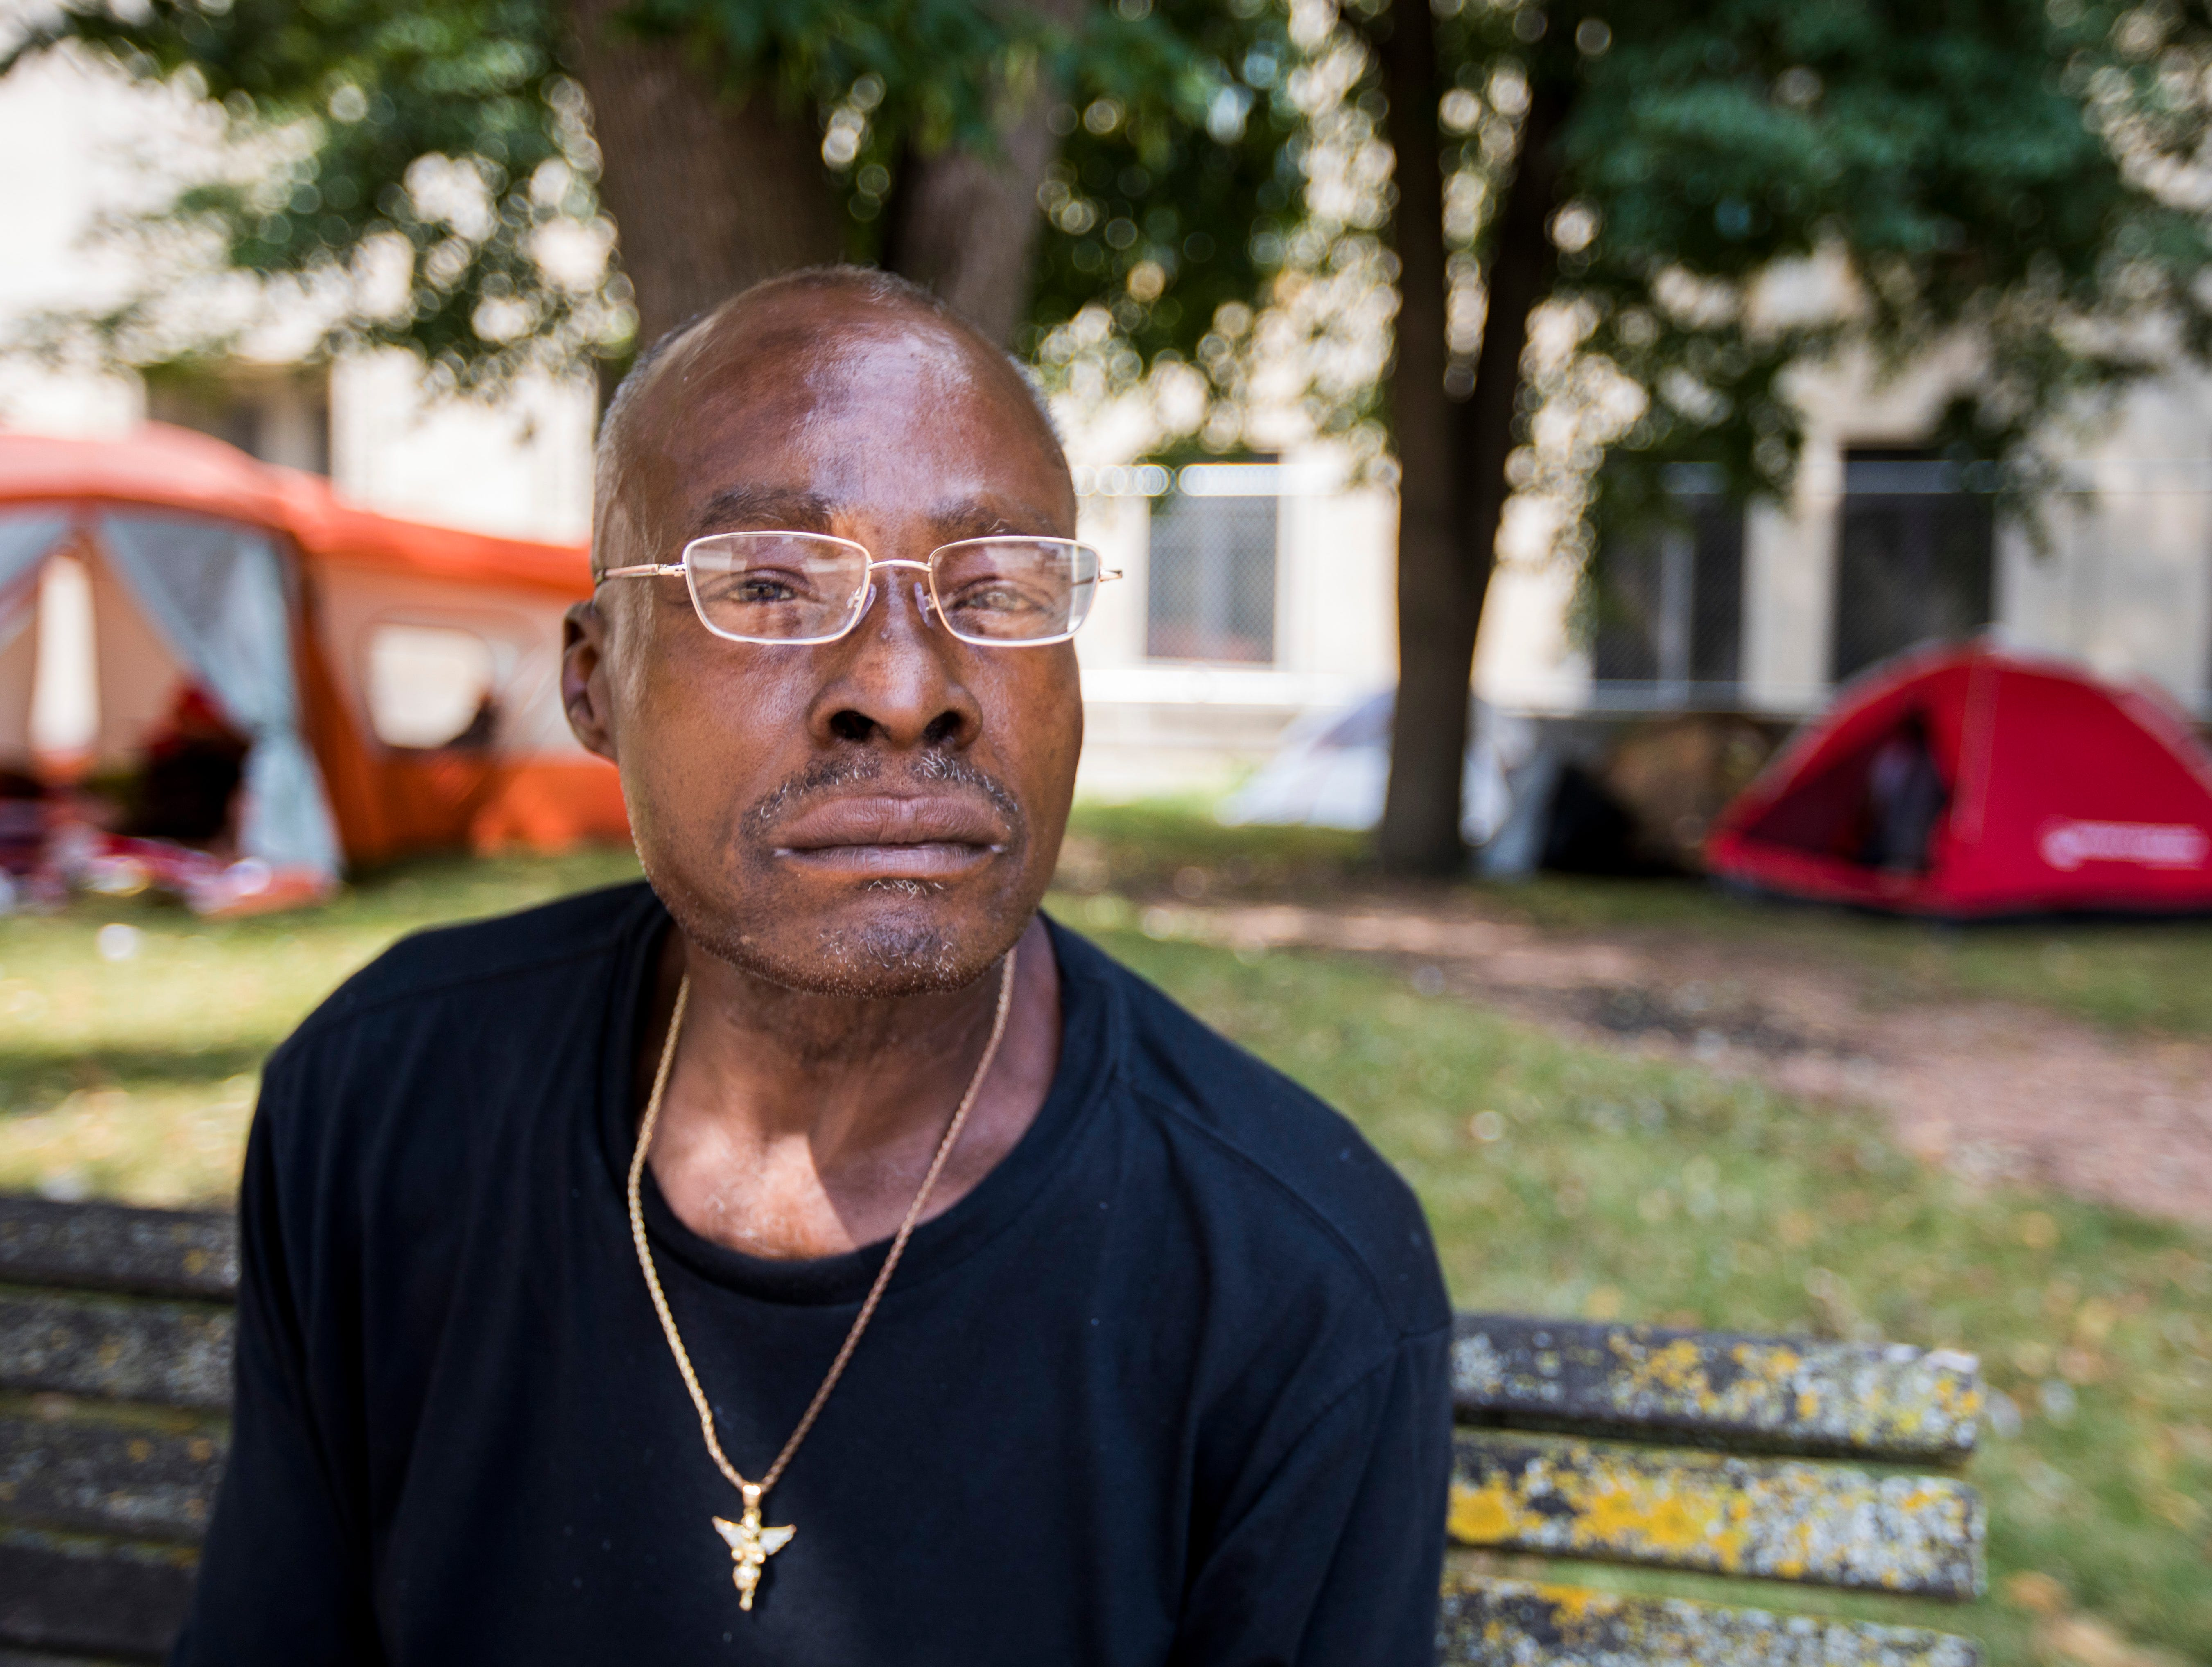 Gregory Richmond, 59, a Marine Corps veteran who served during 1979-'81, has been around Milwaukee for about 37 years and has been at the camp at MacArthur Square for about five months. Richmond wears a gold angel around his neck that he says represents the guardian angels who help and watch over him.